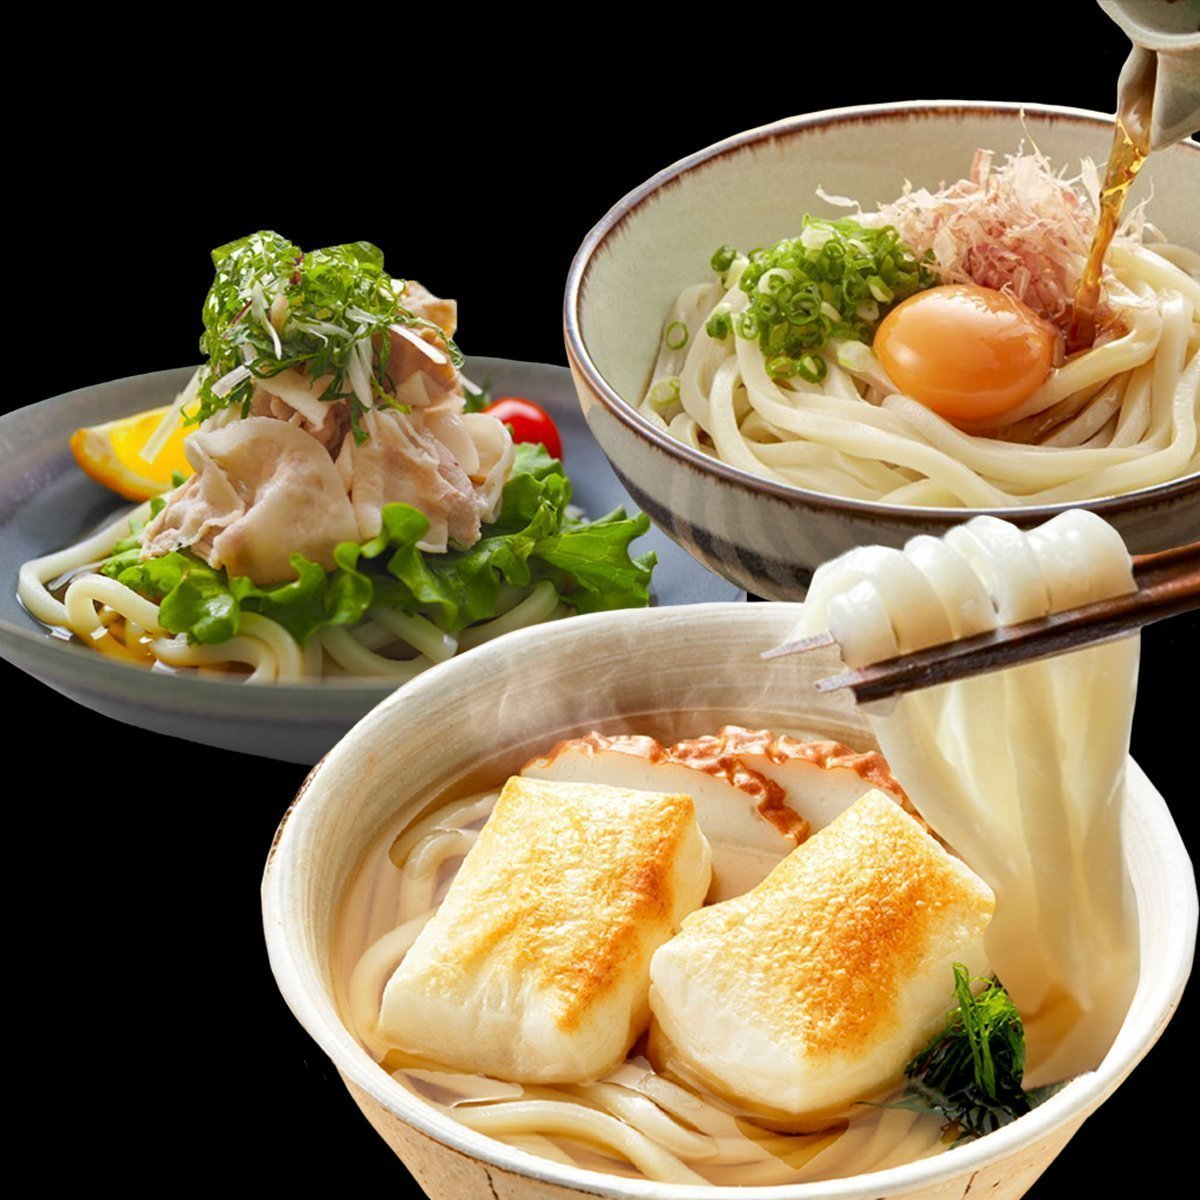 Frozen Udon from Kyoto (5pcs) 175g / 冷凍京風うどん 冷凍麺